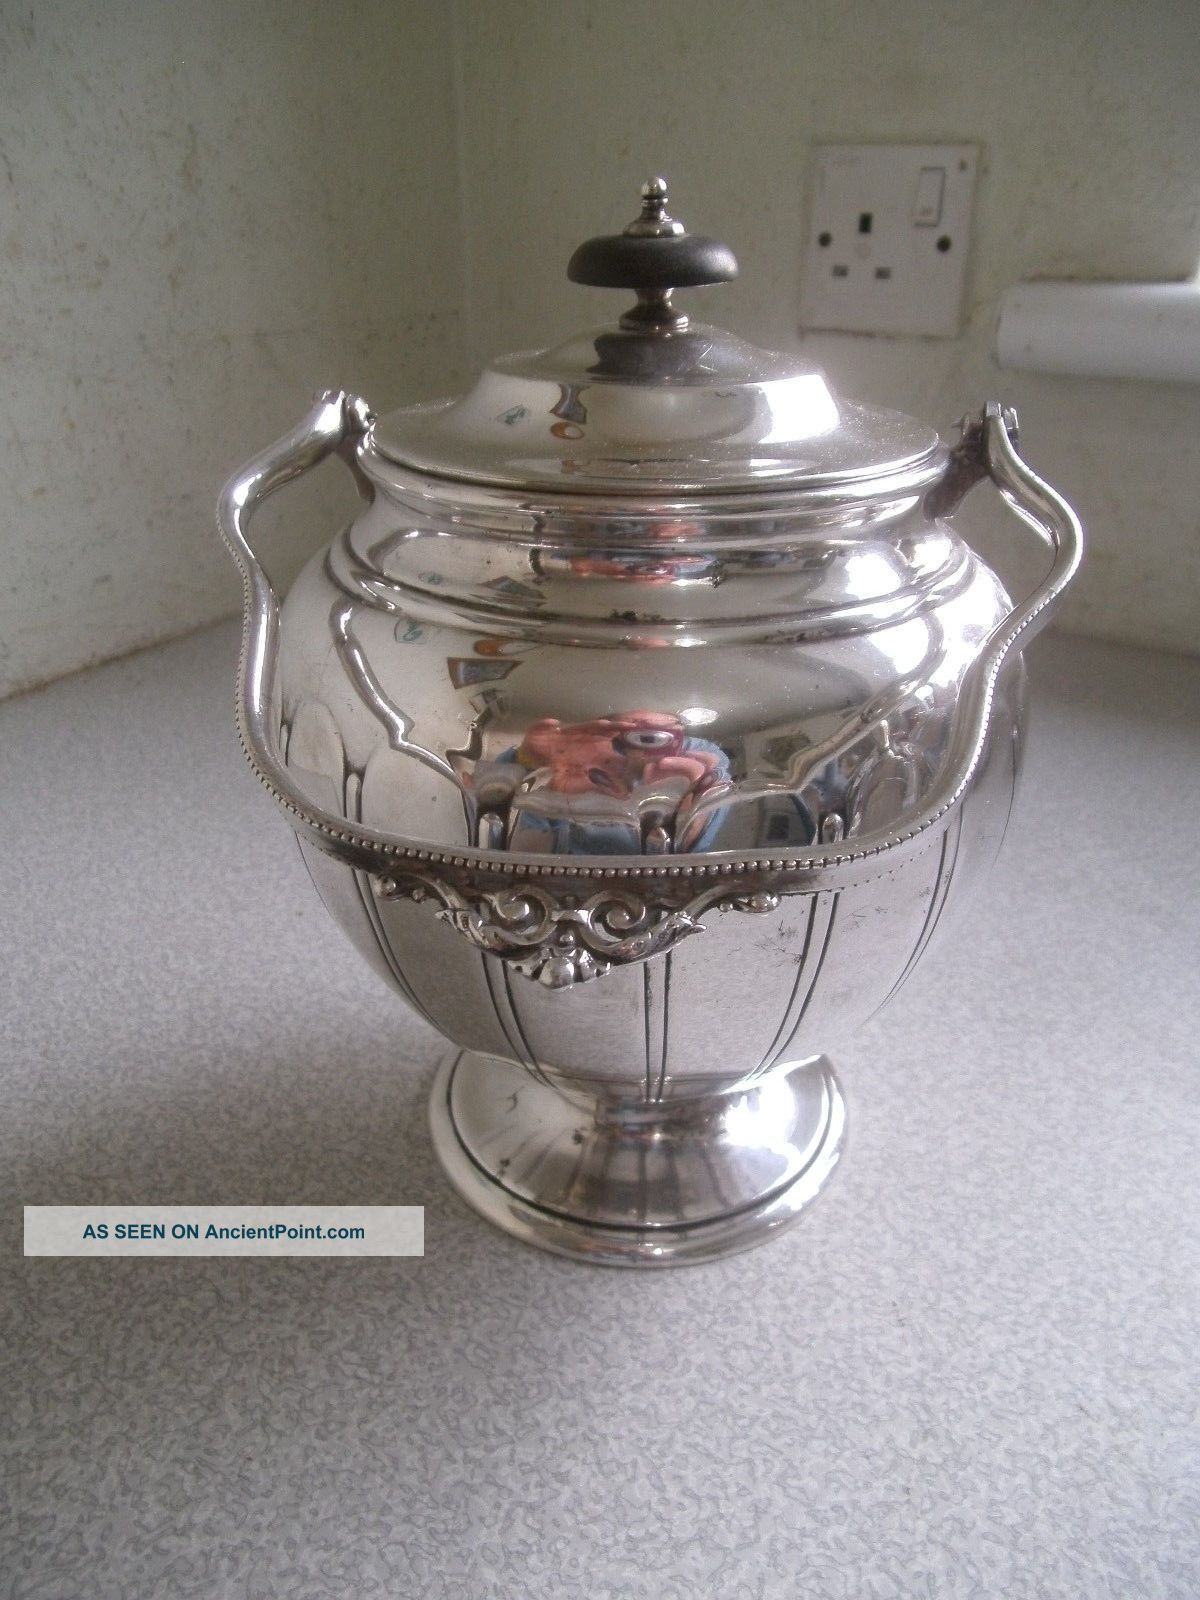 Lovely Vintage / Antique Silver Plated Biscuit Barrel - Hinged Lid Dishes & Coasters photo